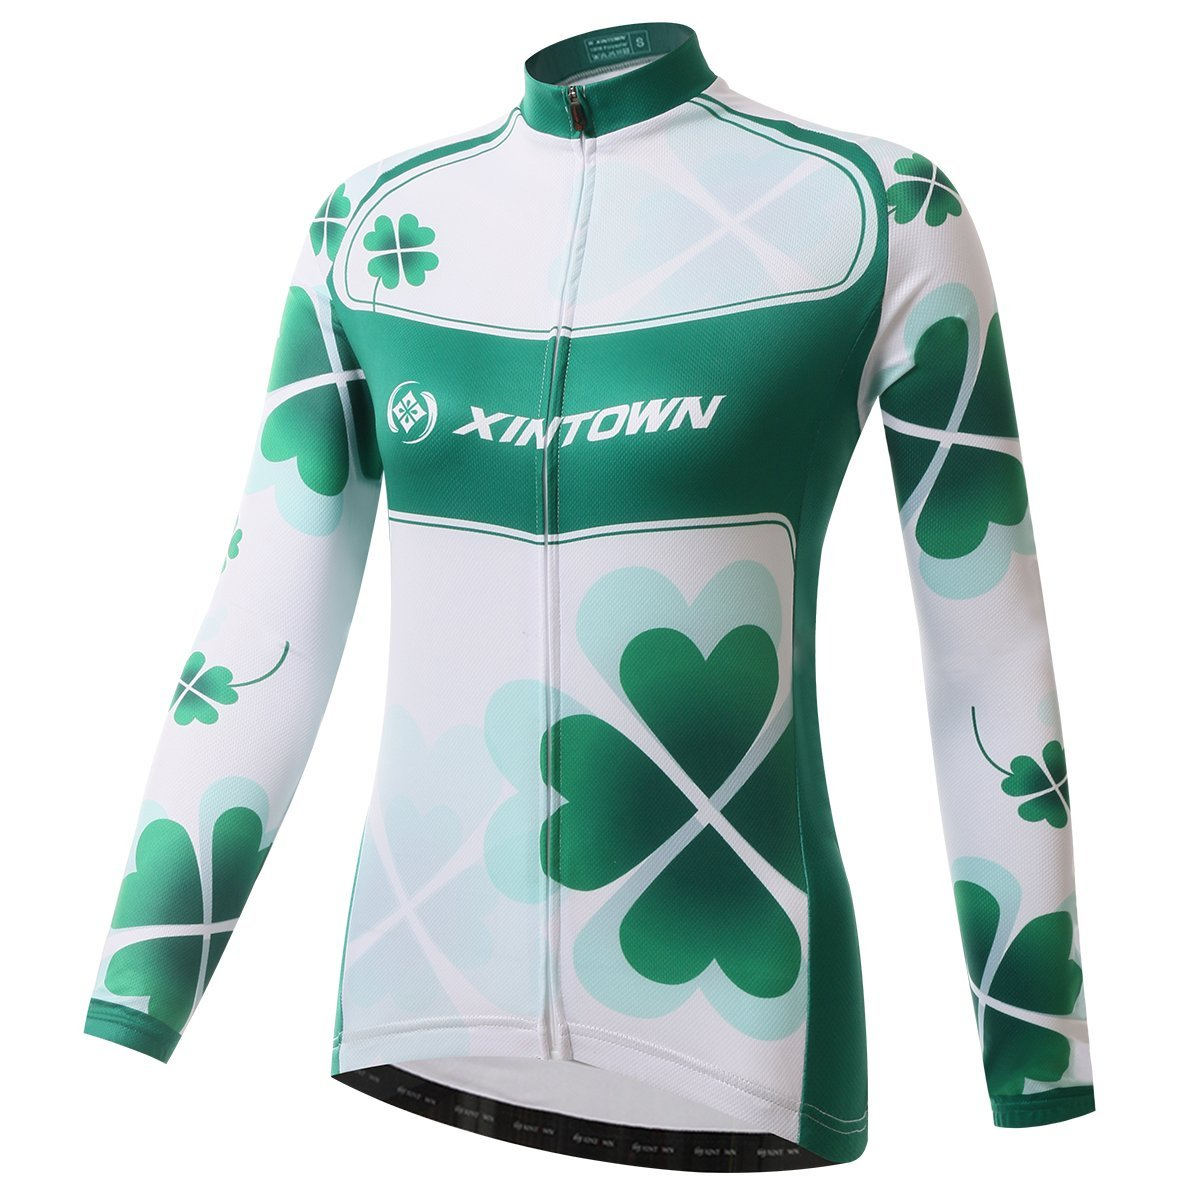 BESYL Womens Printed High-Performance Mesh Cycling Clothing Suit, Breathable Long Sleeve Cycling Jersey and Bib Padded Pants Kit for Bicycle Bike Riding Biker (Clover Green White)